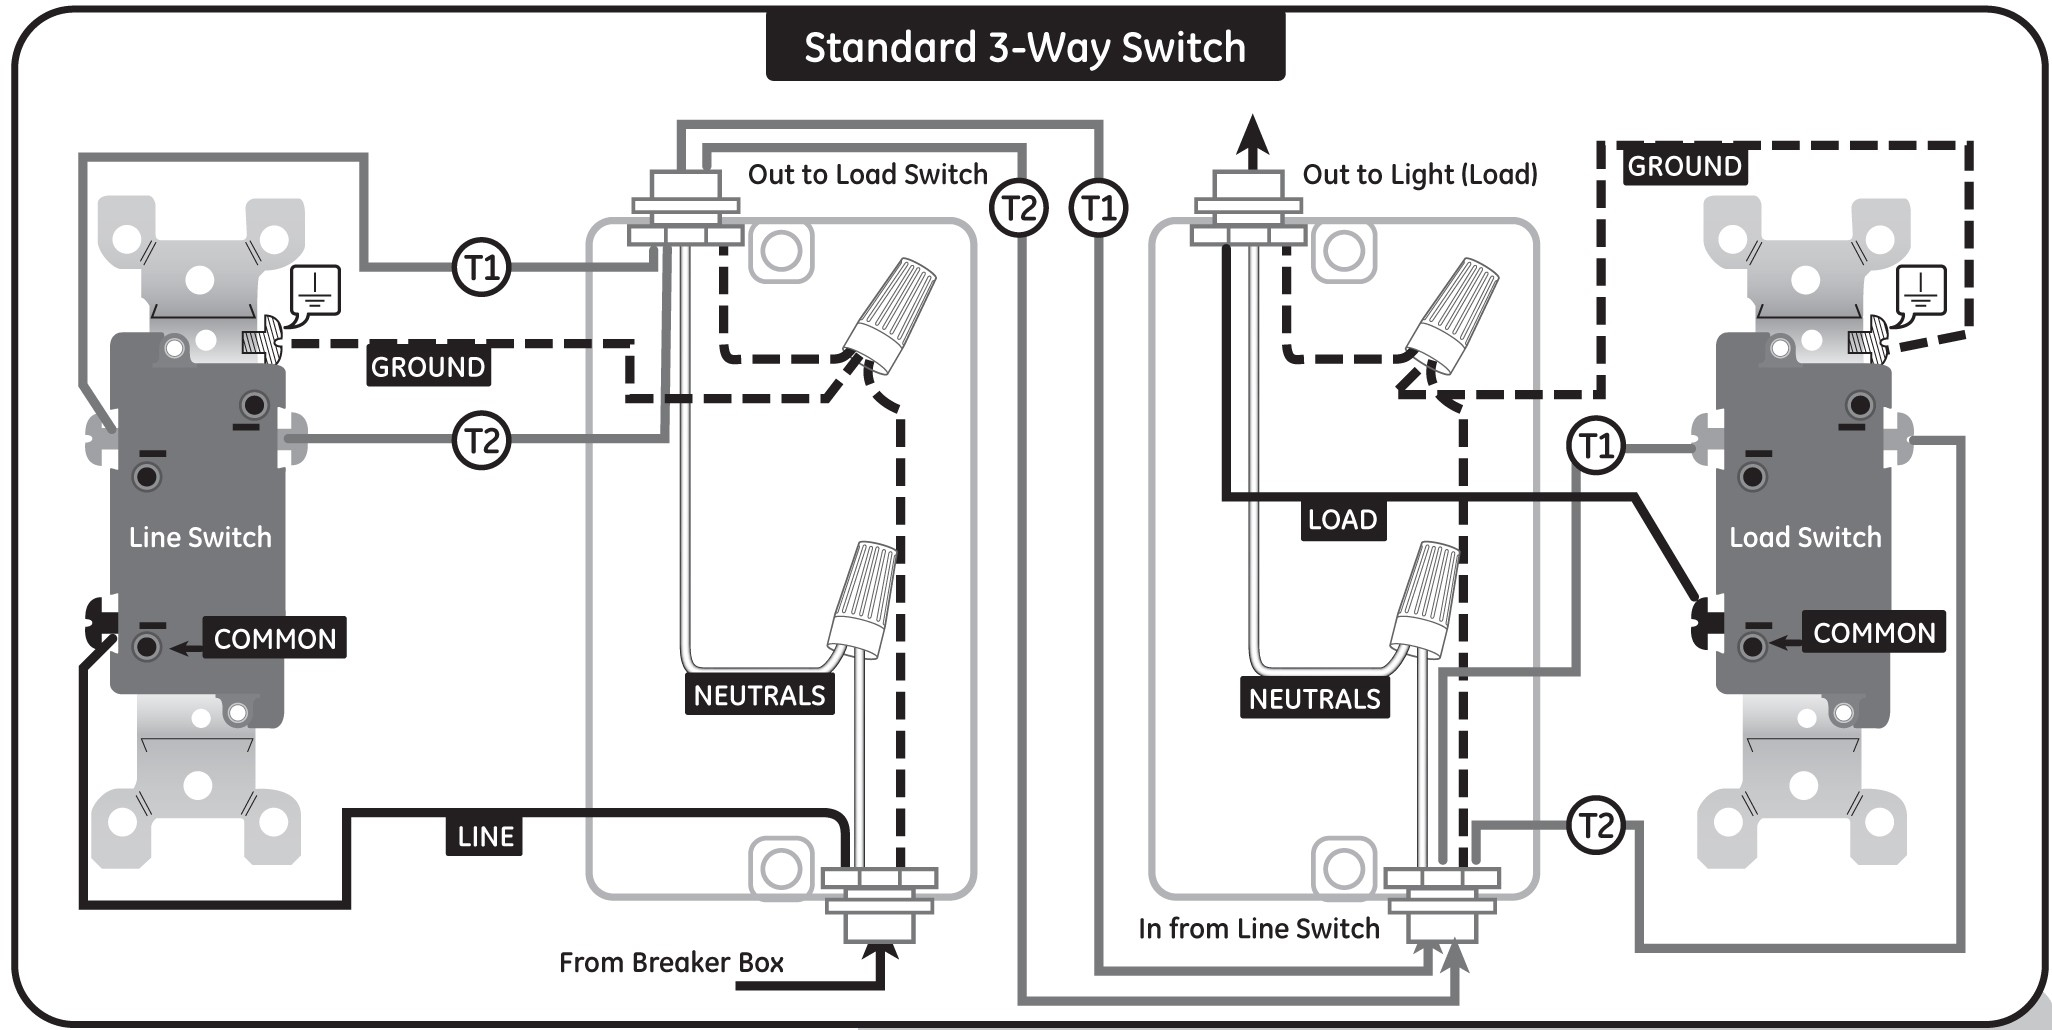 ge z wave 4 way switch wiring diagram Download-Ge Z Wave 3 Way Switch Wiring Diagram Fresh Ge Smart Switch 3 Way Wiring Diagram 20-s